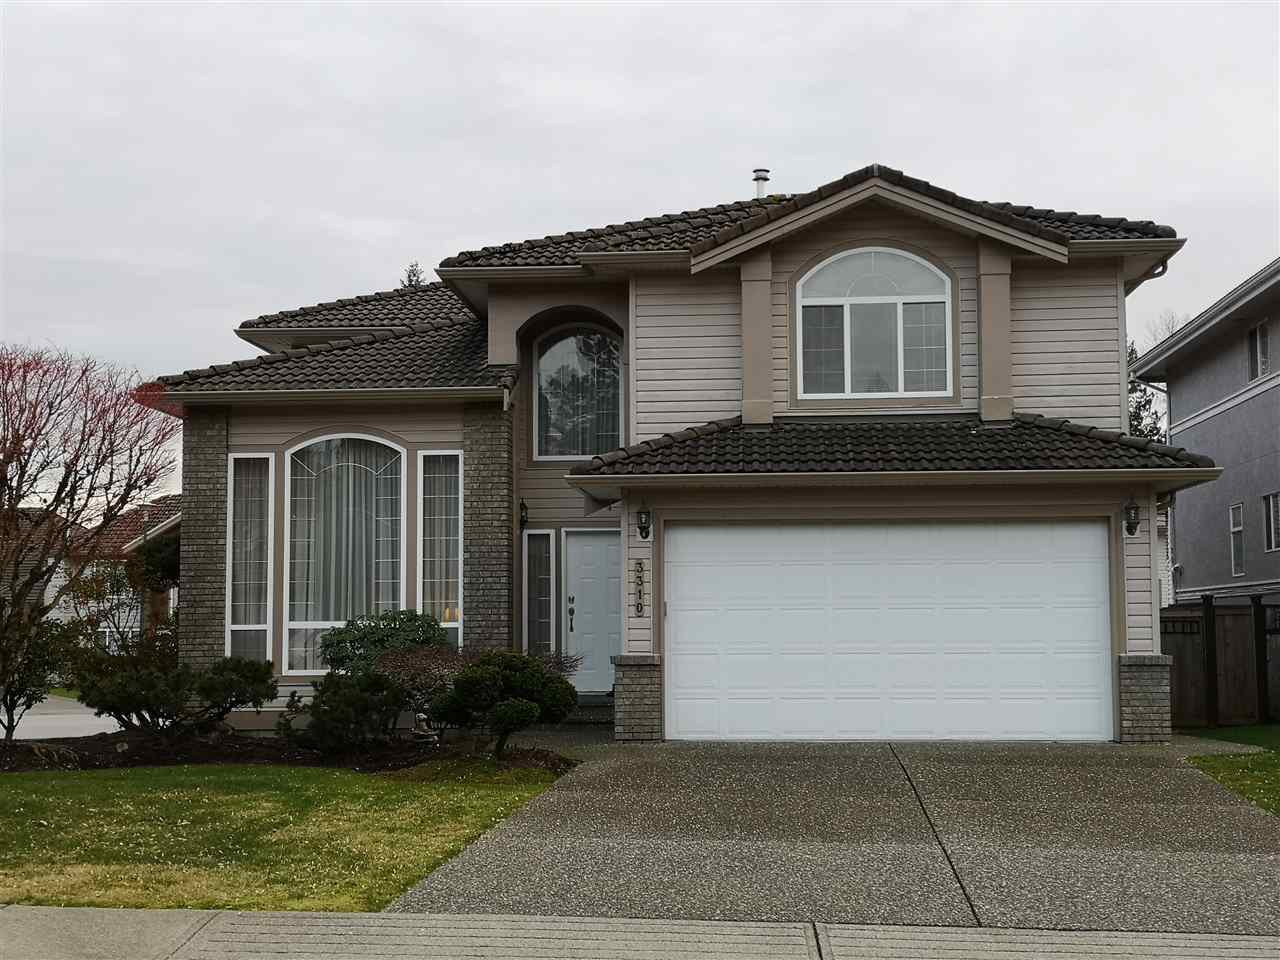 Main Photo: 3310 RAKANNA Place in Coquitlam: Hockaday House for sale : MLS®# R2438286